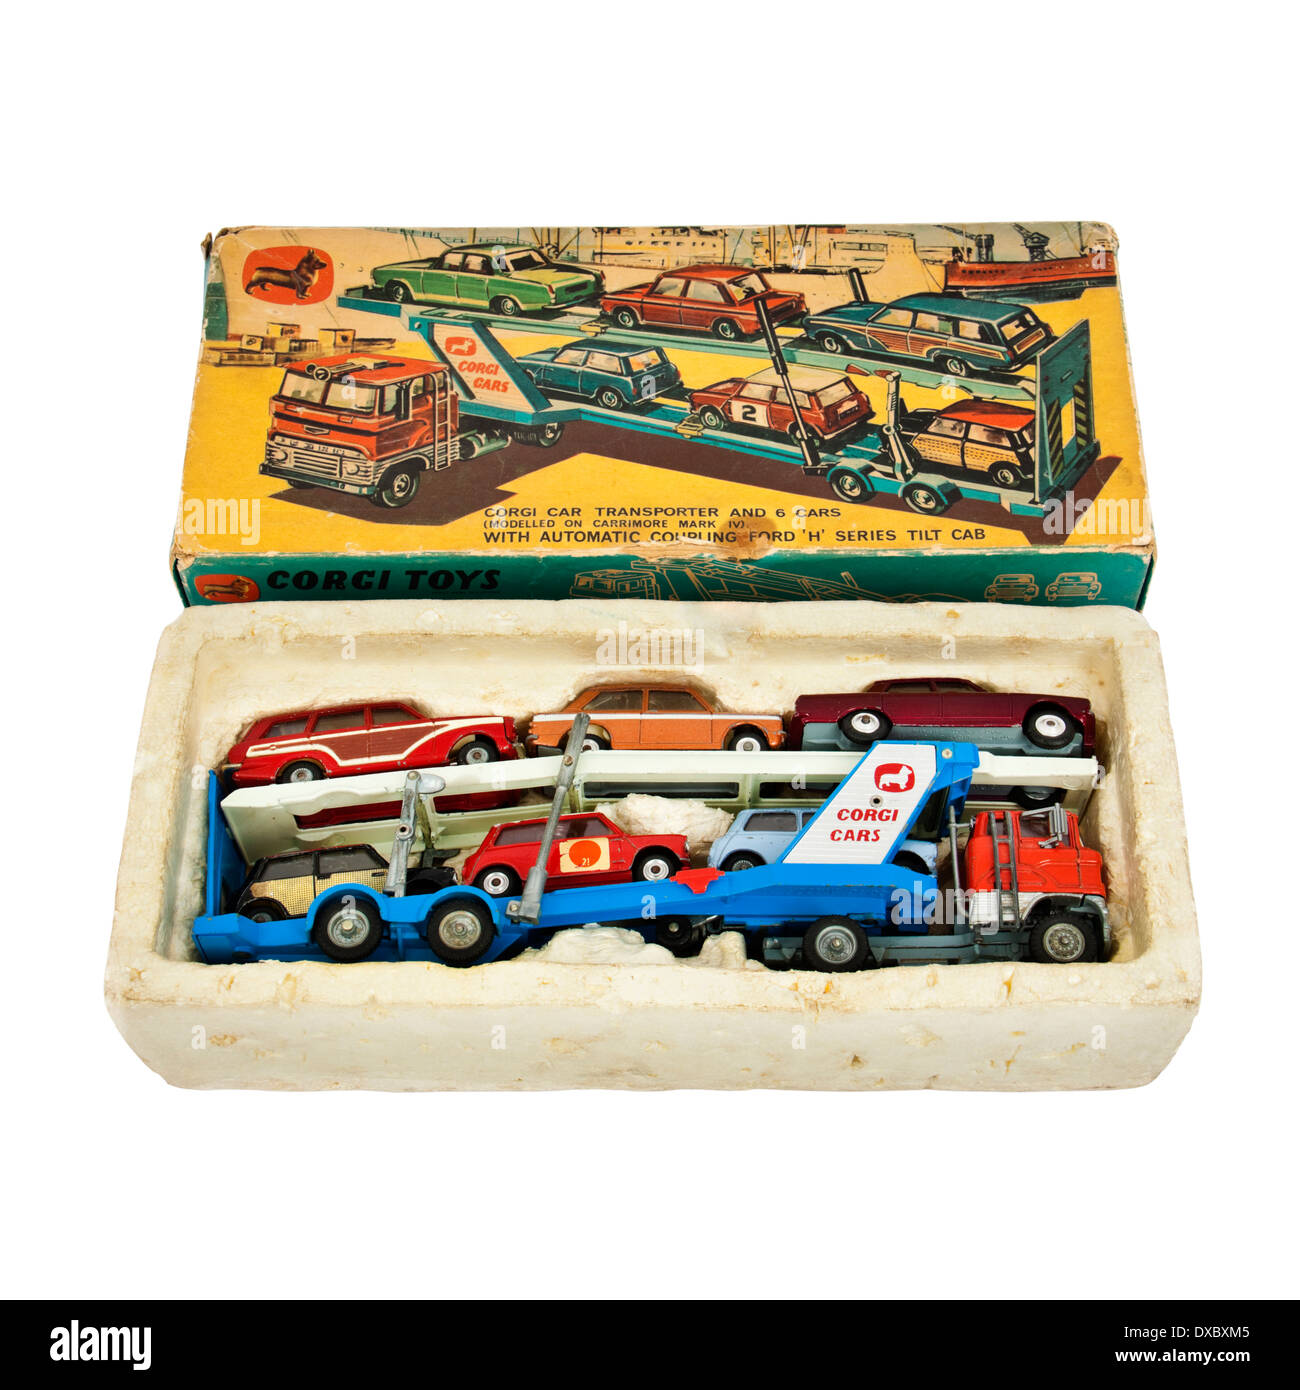 Rare vintage Corgy Toys No 41 Gift Set from 1967, containing Carrimore Mark IV car transporter - Stock Image